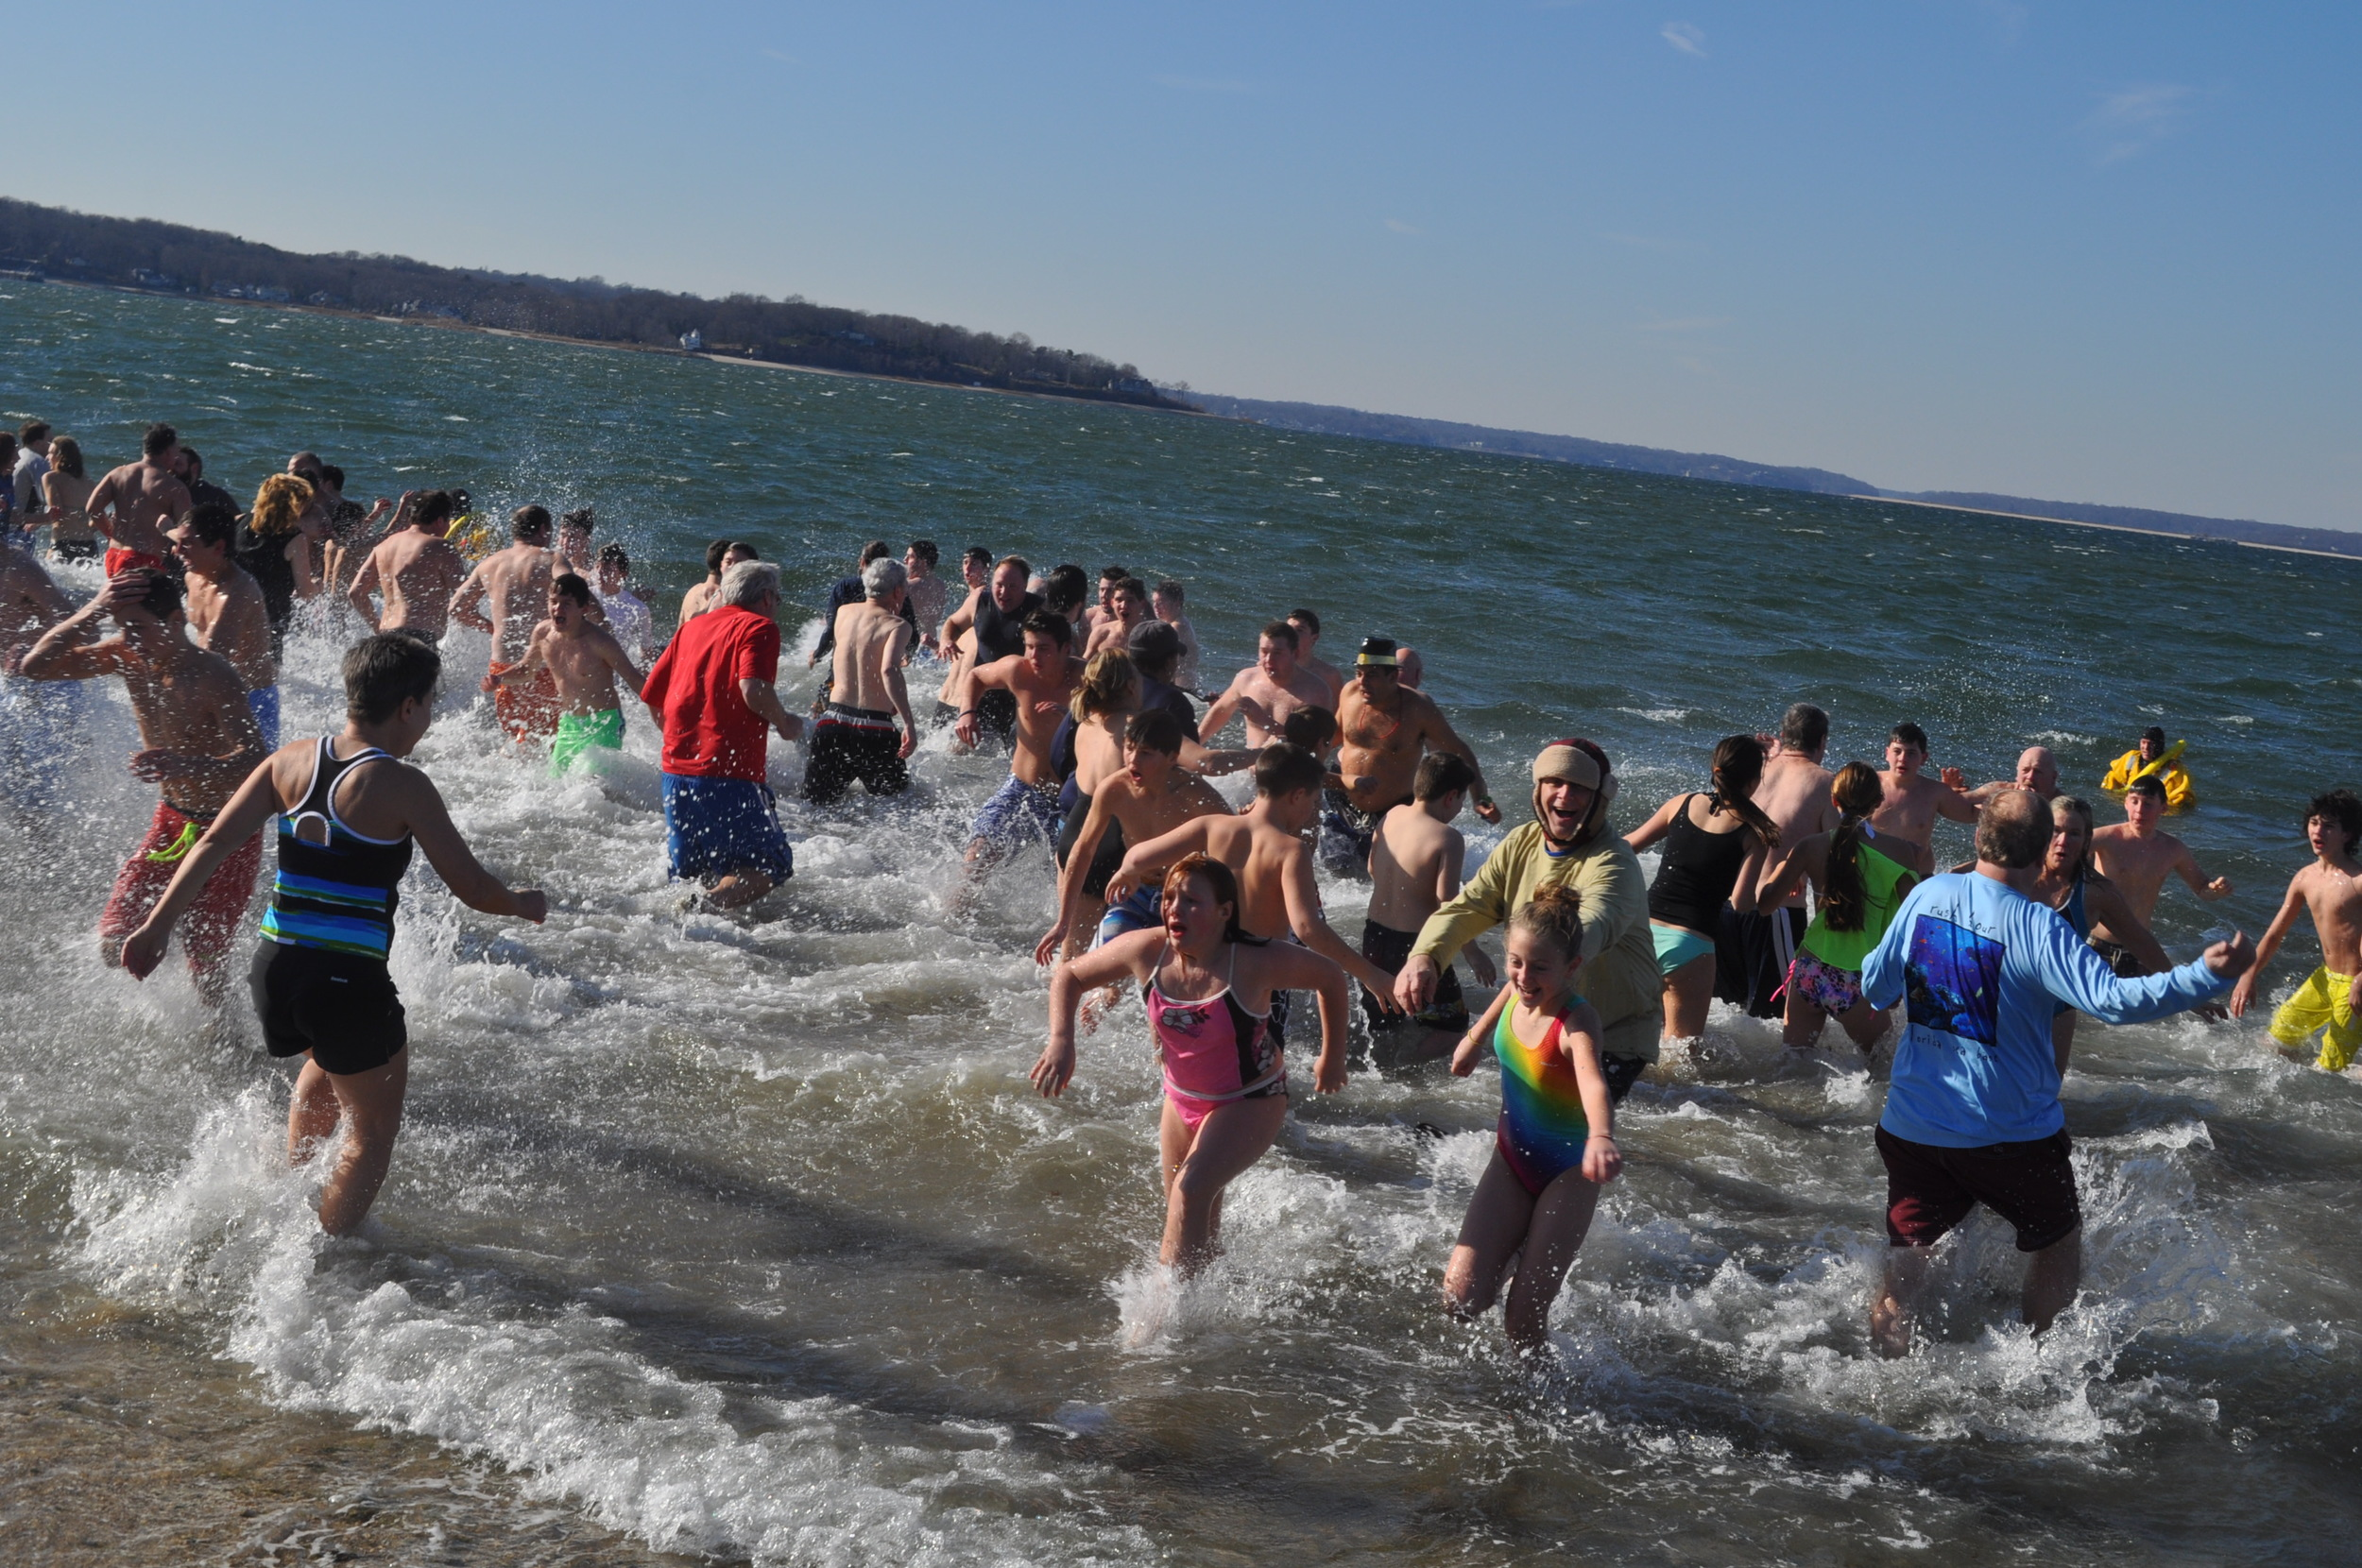 Run for warmth! Some of the hundreds race for the shore after christening 2015 with a frigid dip at Steers Beach.